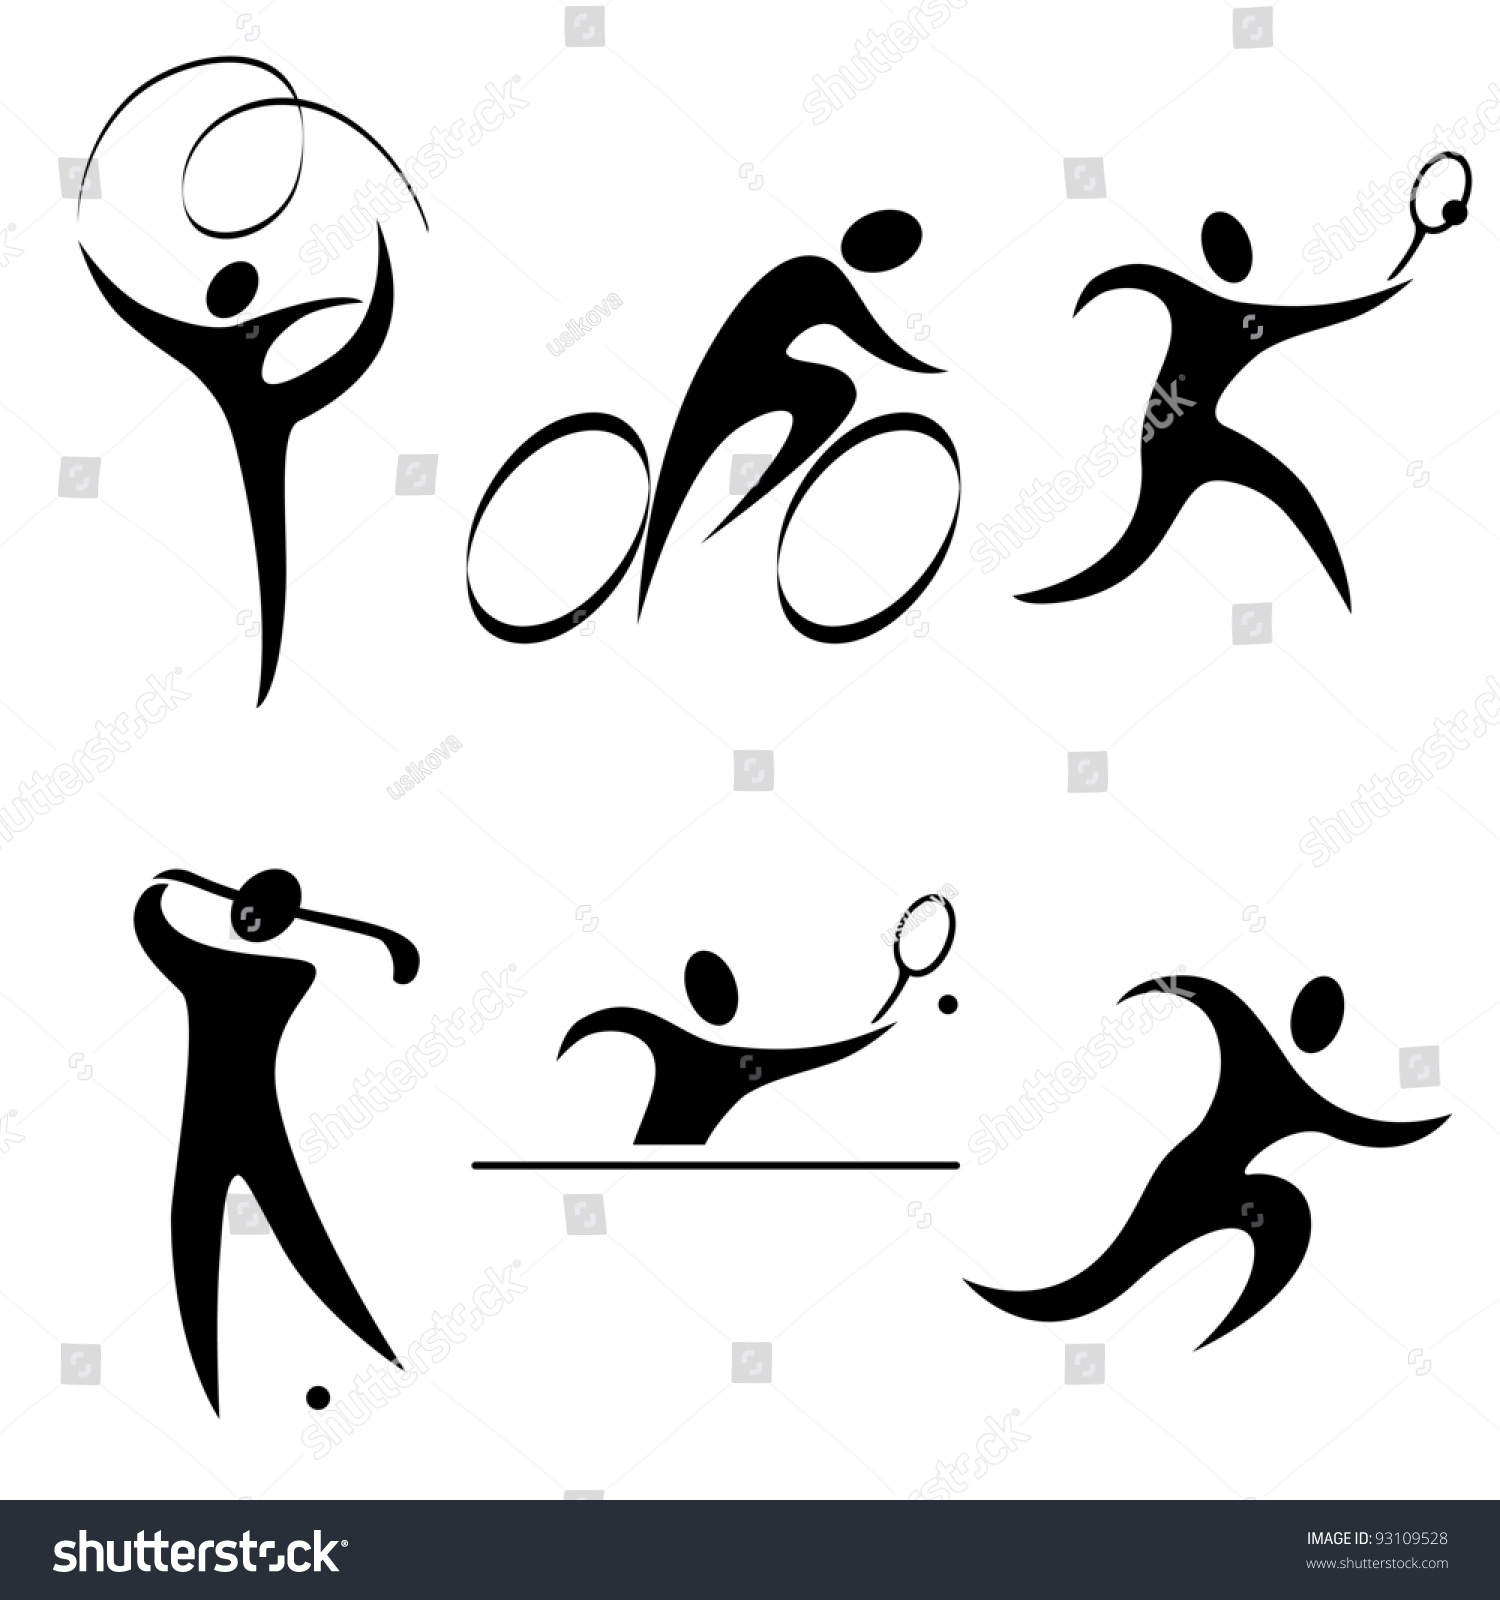 stock-vector-set-sports-icon-person-individual-sports-summer-olympic-discipline-vector-illustration-93109528.jpg